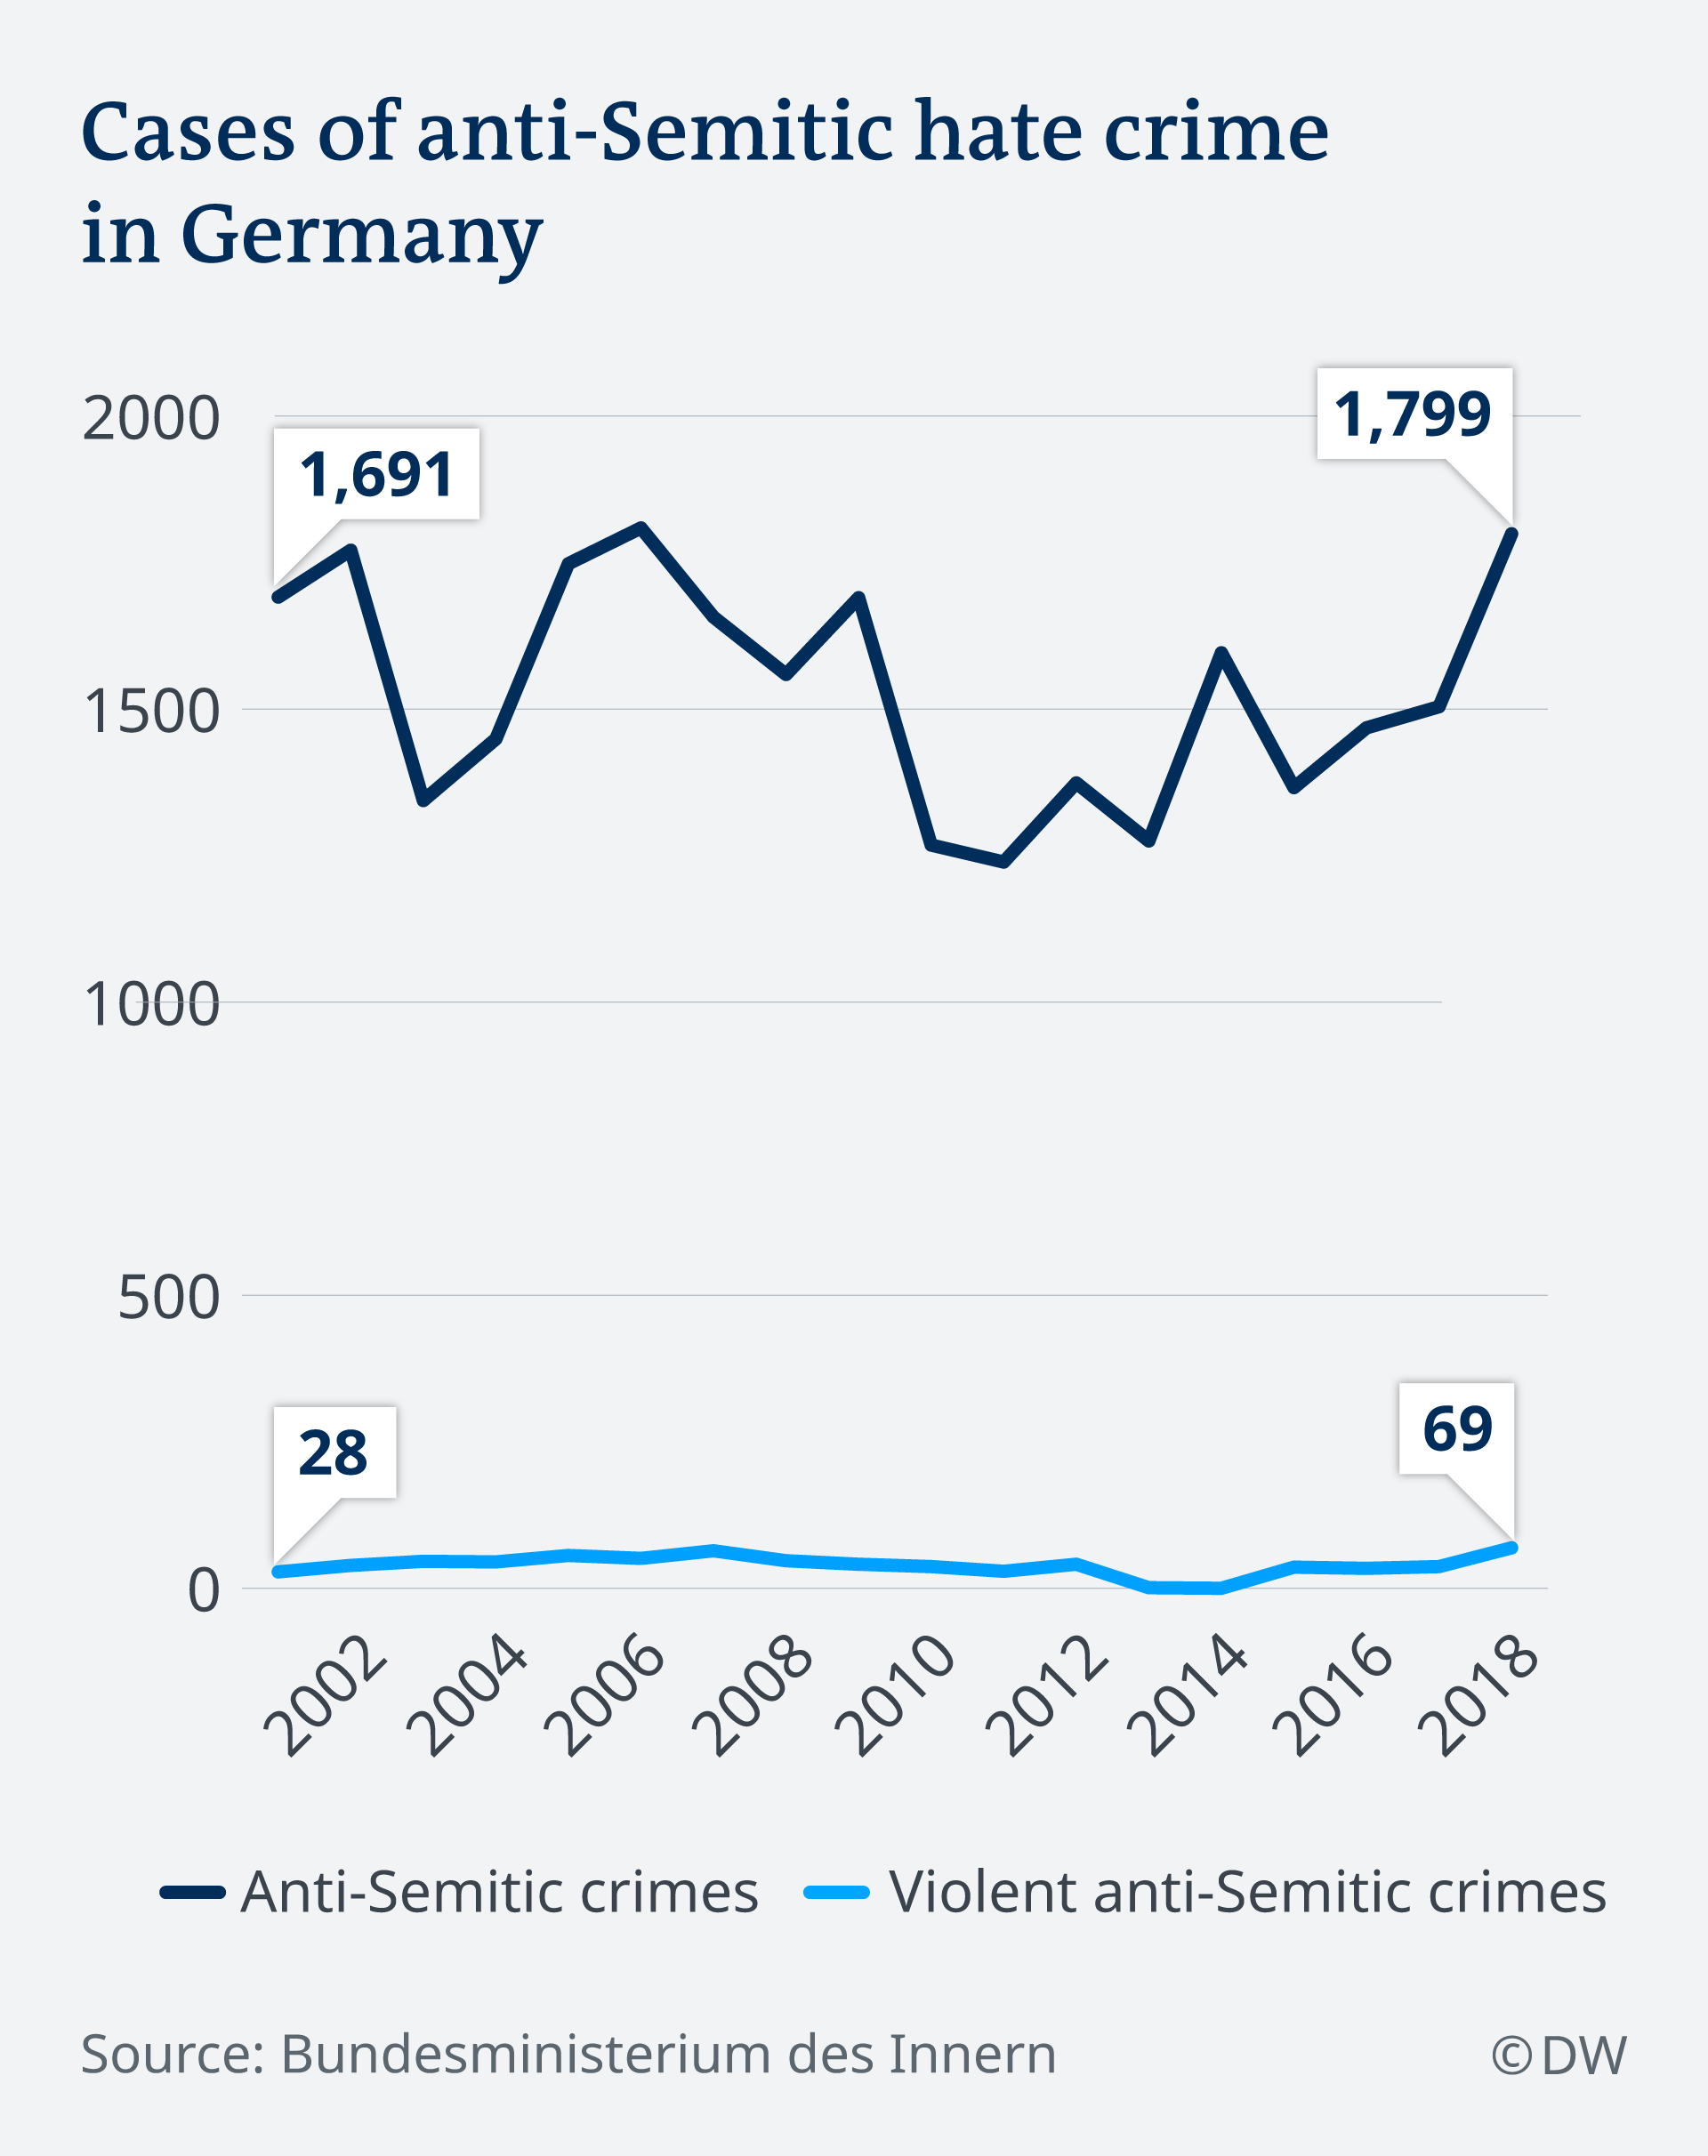 DW graphic showing total cases of anti-Semitic crimes in Germany from 2001-2018.